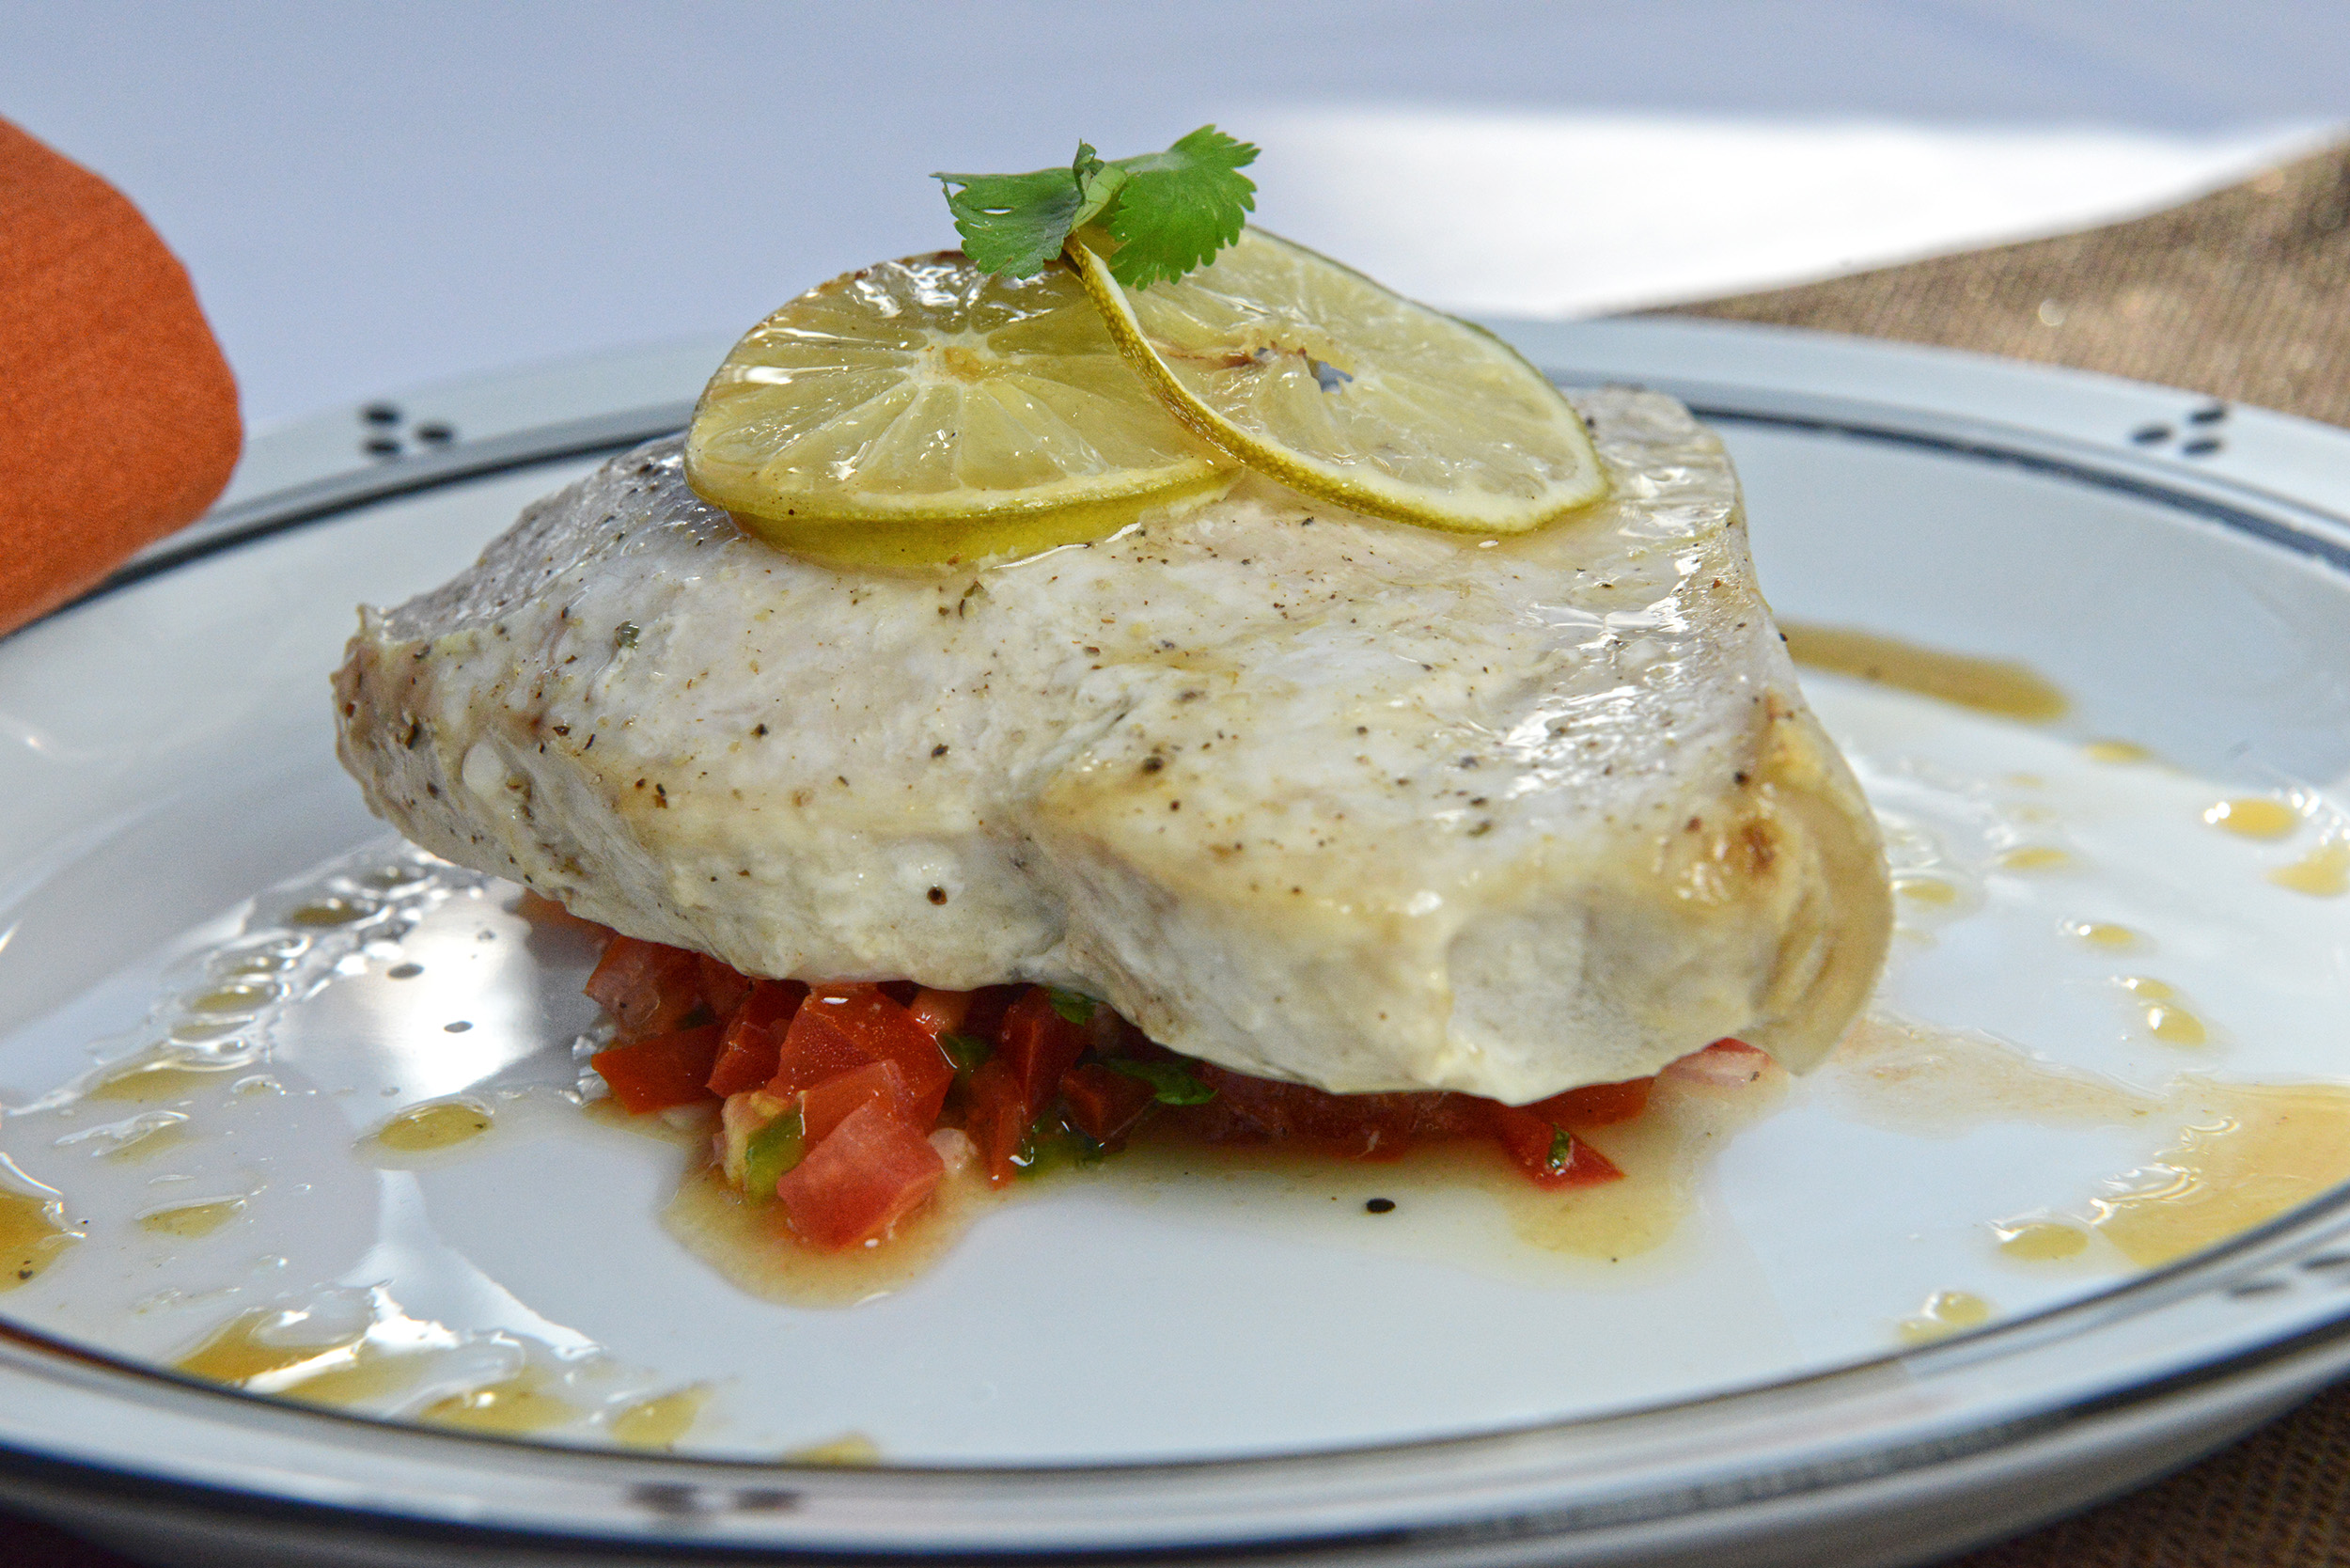 Swordfish as a source of protein.